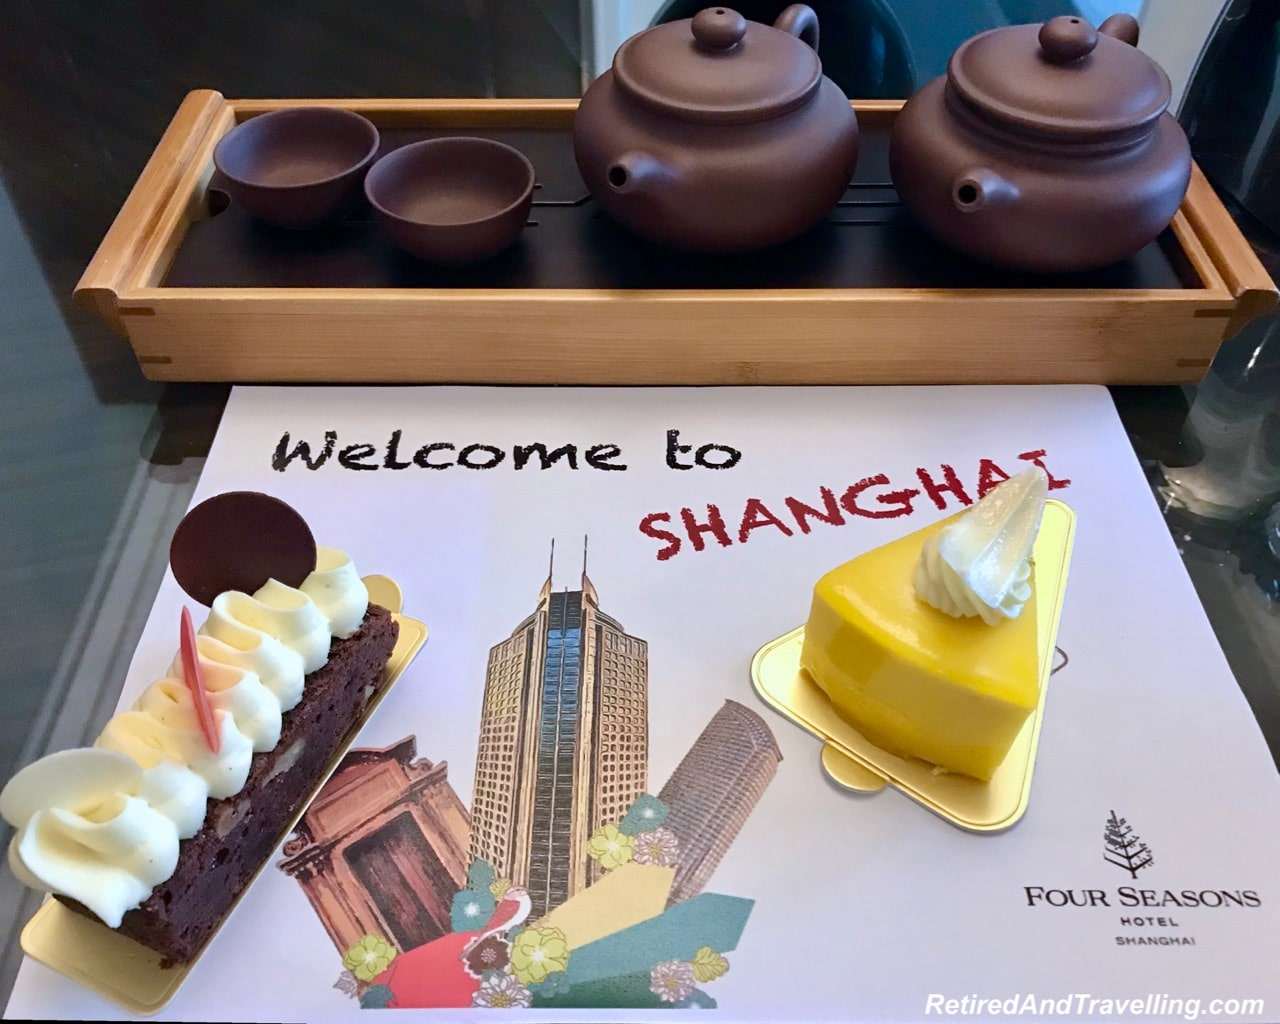 Shanghai Four Seasons Welcome Chocolate - We Ate And Drank Our Way Through 2018.jpg